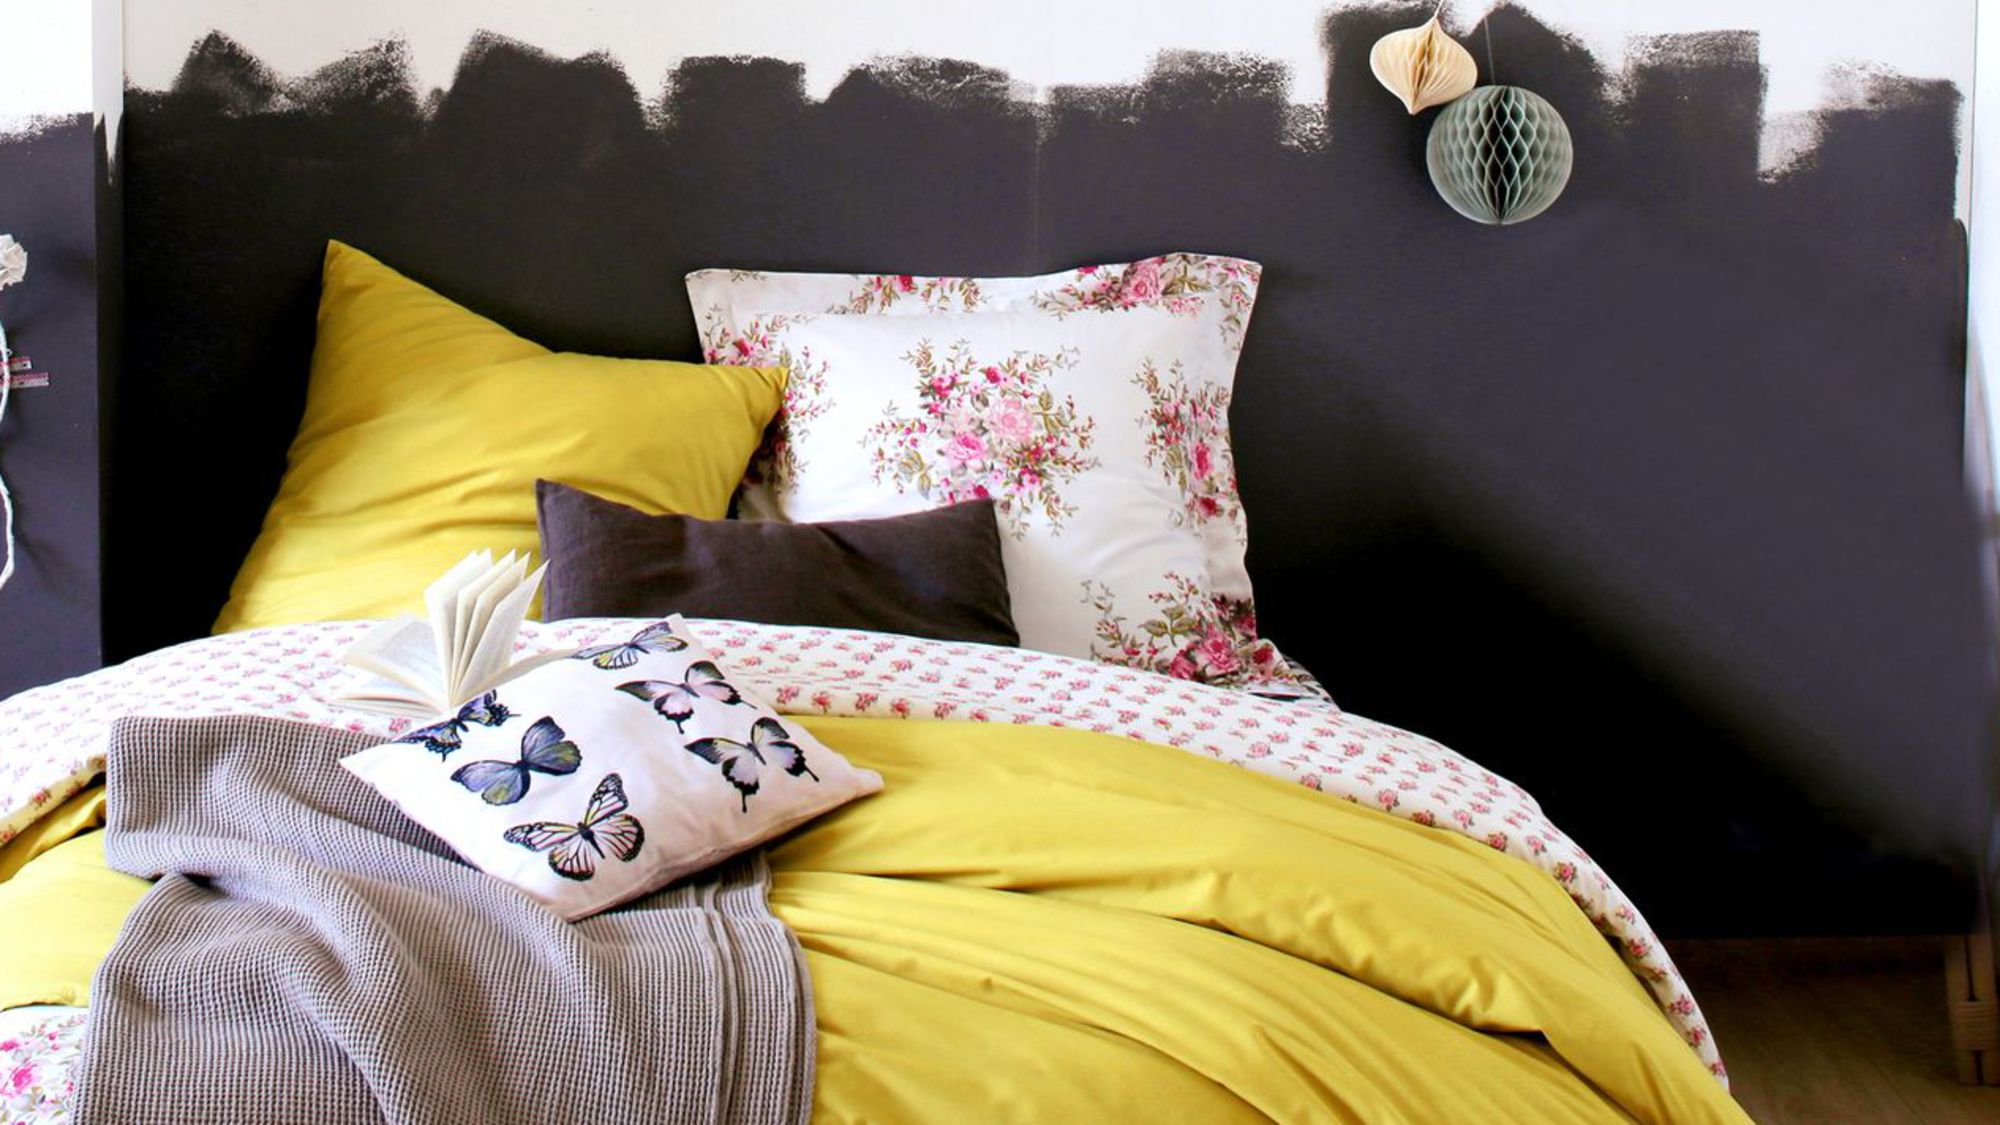 12 id es pour d corer votre t te de lit des id es. Black Bedroom Furniture Sets. Home Design Ideas